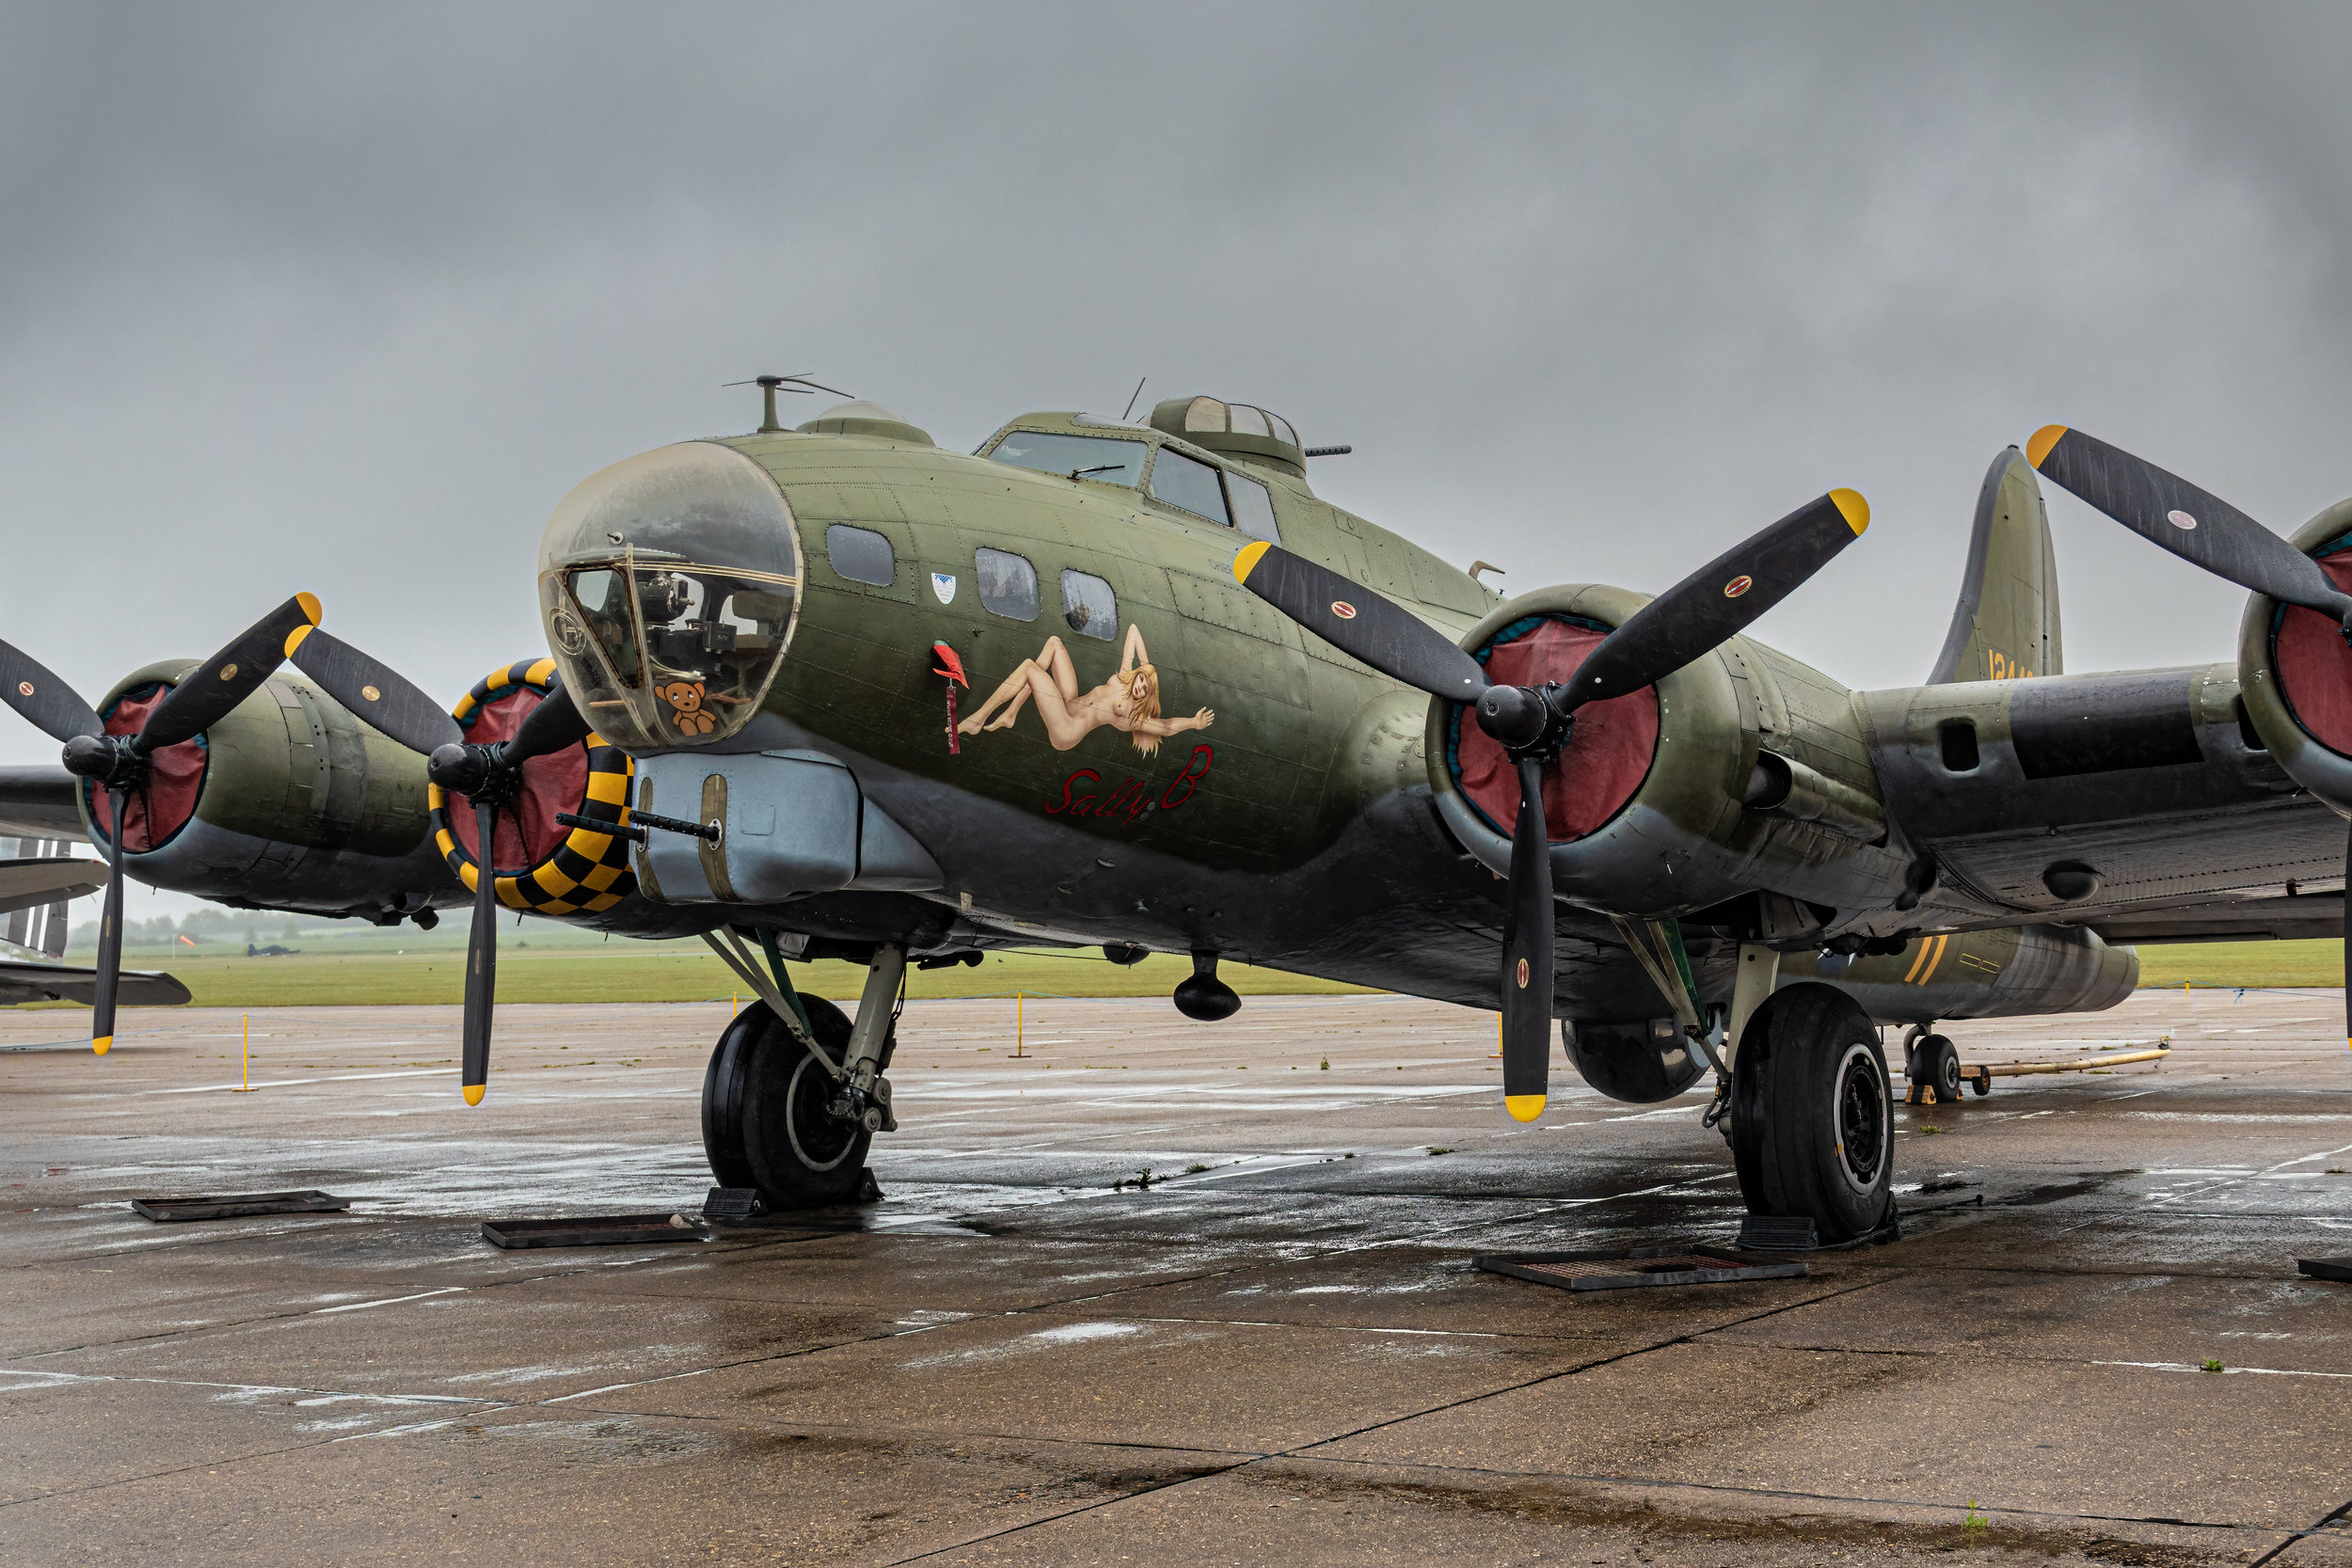 This second B-17 is a flying exhibit which guests can pay for rides in. Here it is out on the tarmac looking like a scene right out of  Twelve O'Clock High  or  Memphis Belle .